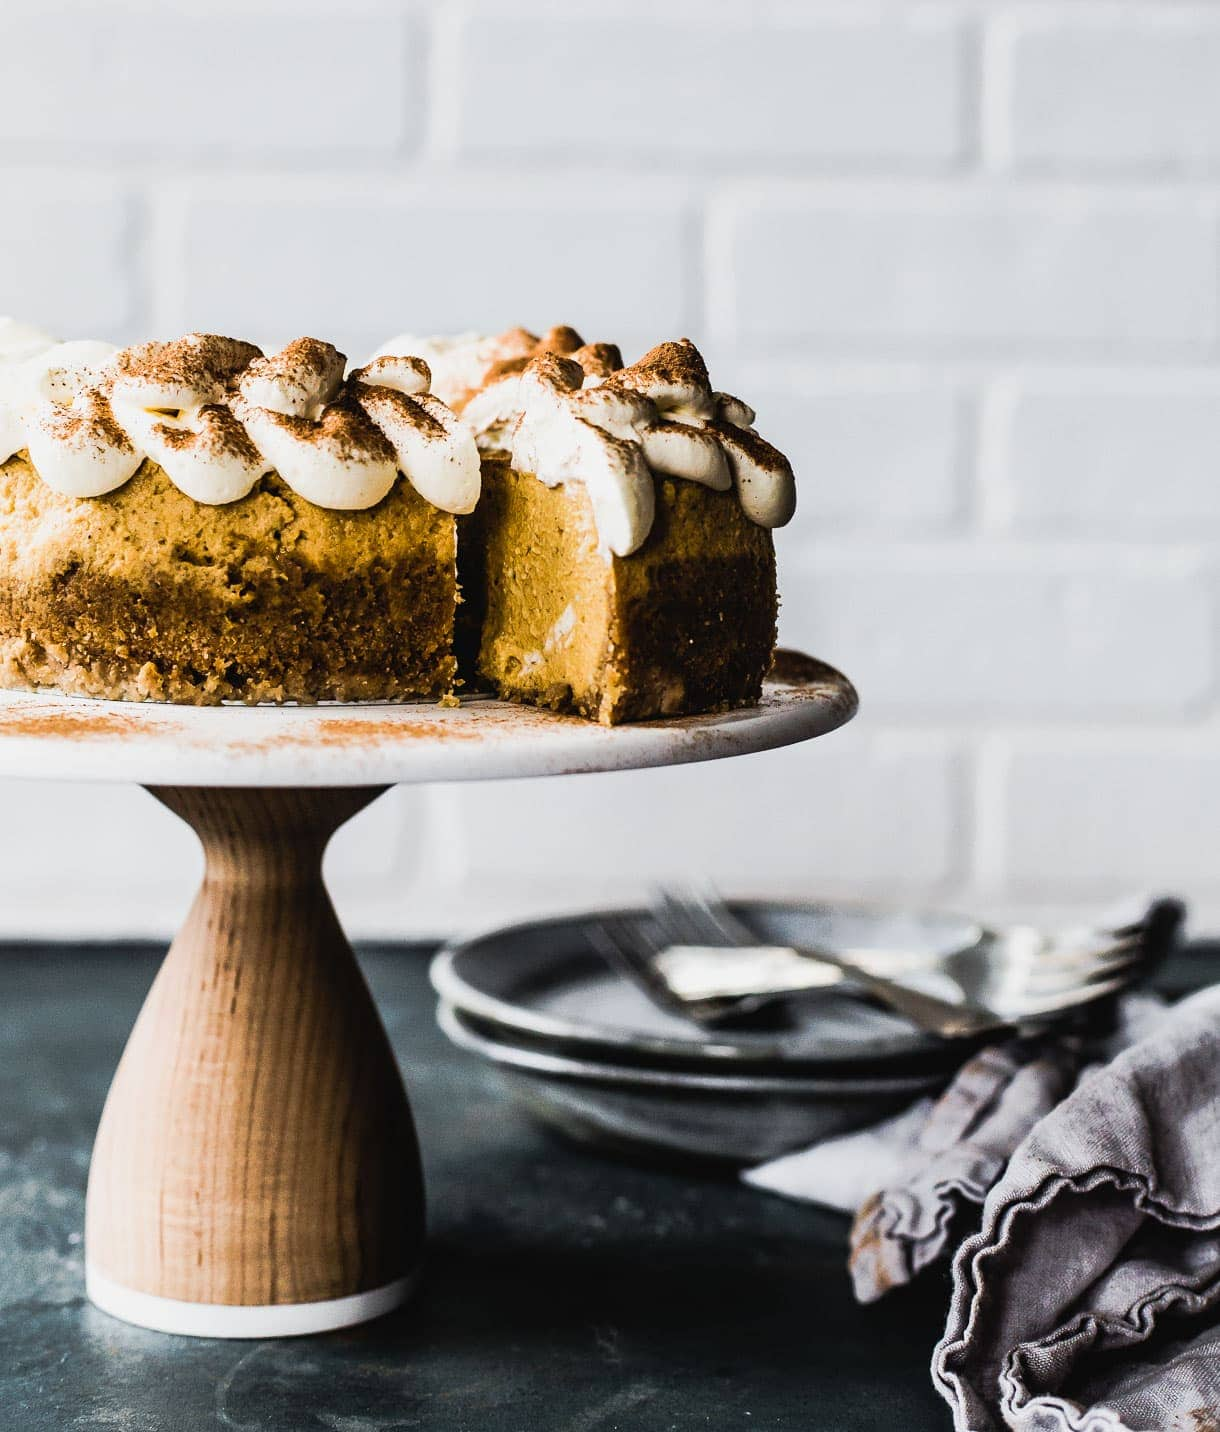 Cinnamon Dusted Pumpkin Cheesecake with gluten free crust